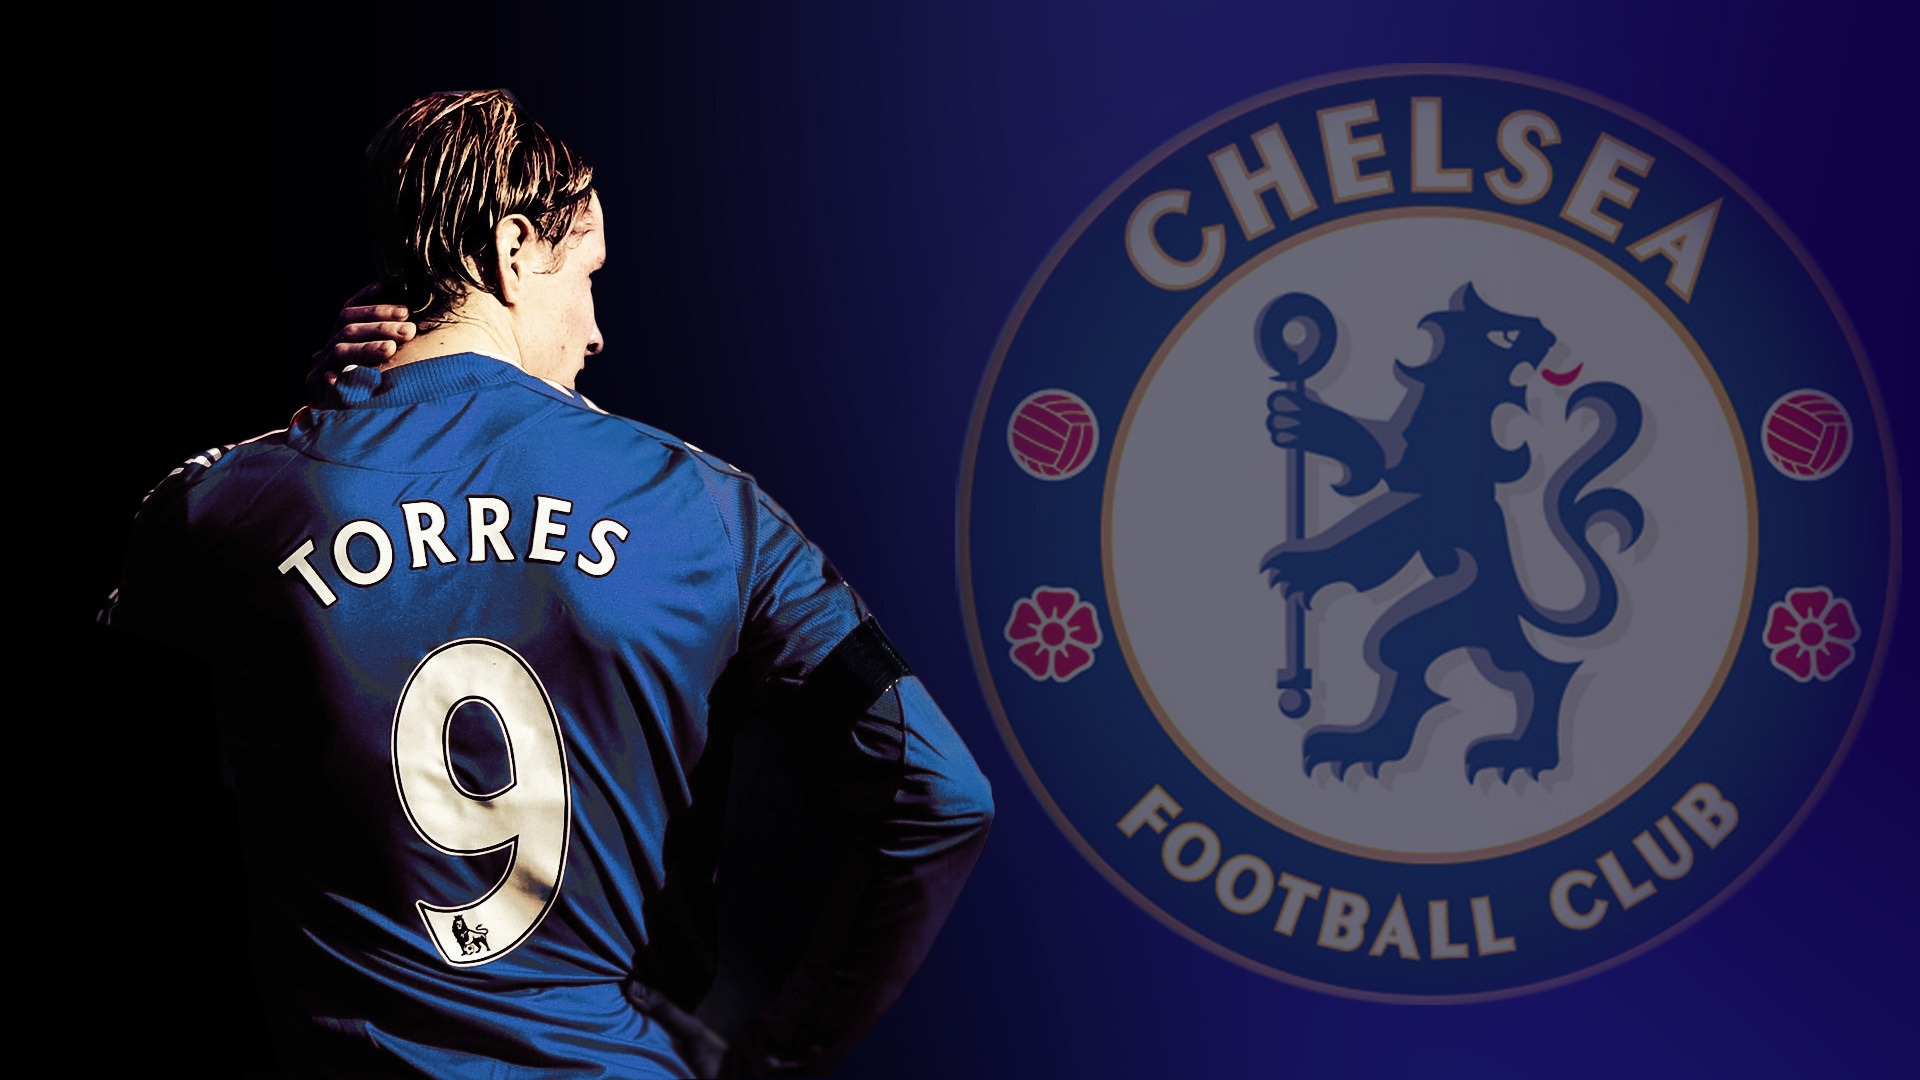 Download wallpaper 1920x1080 fernando torres footballer chelsea fernando torres footballer chelsea voltagebd Image collections